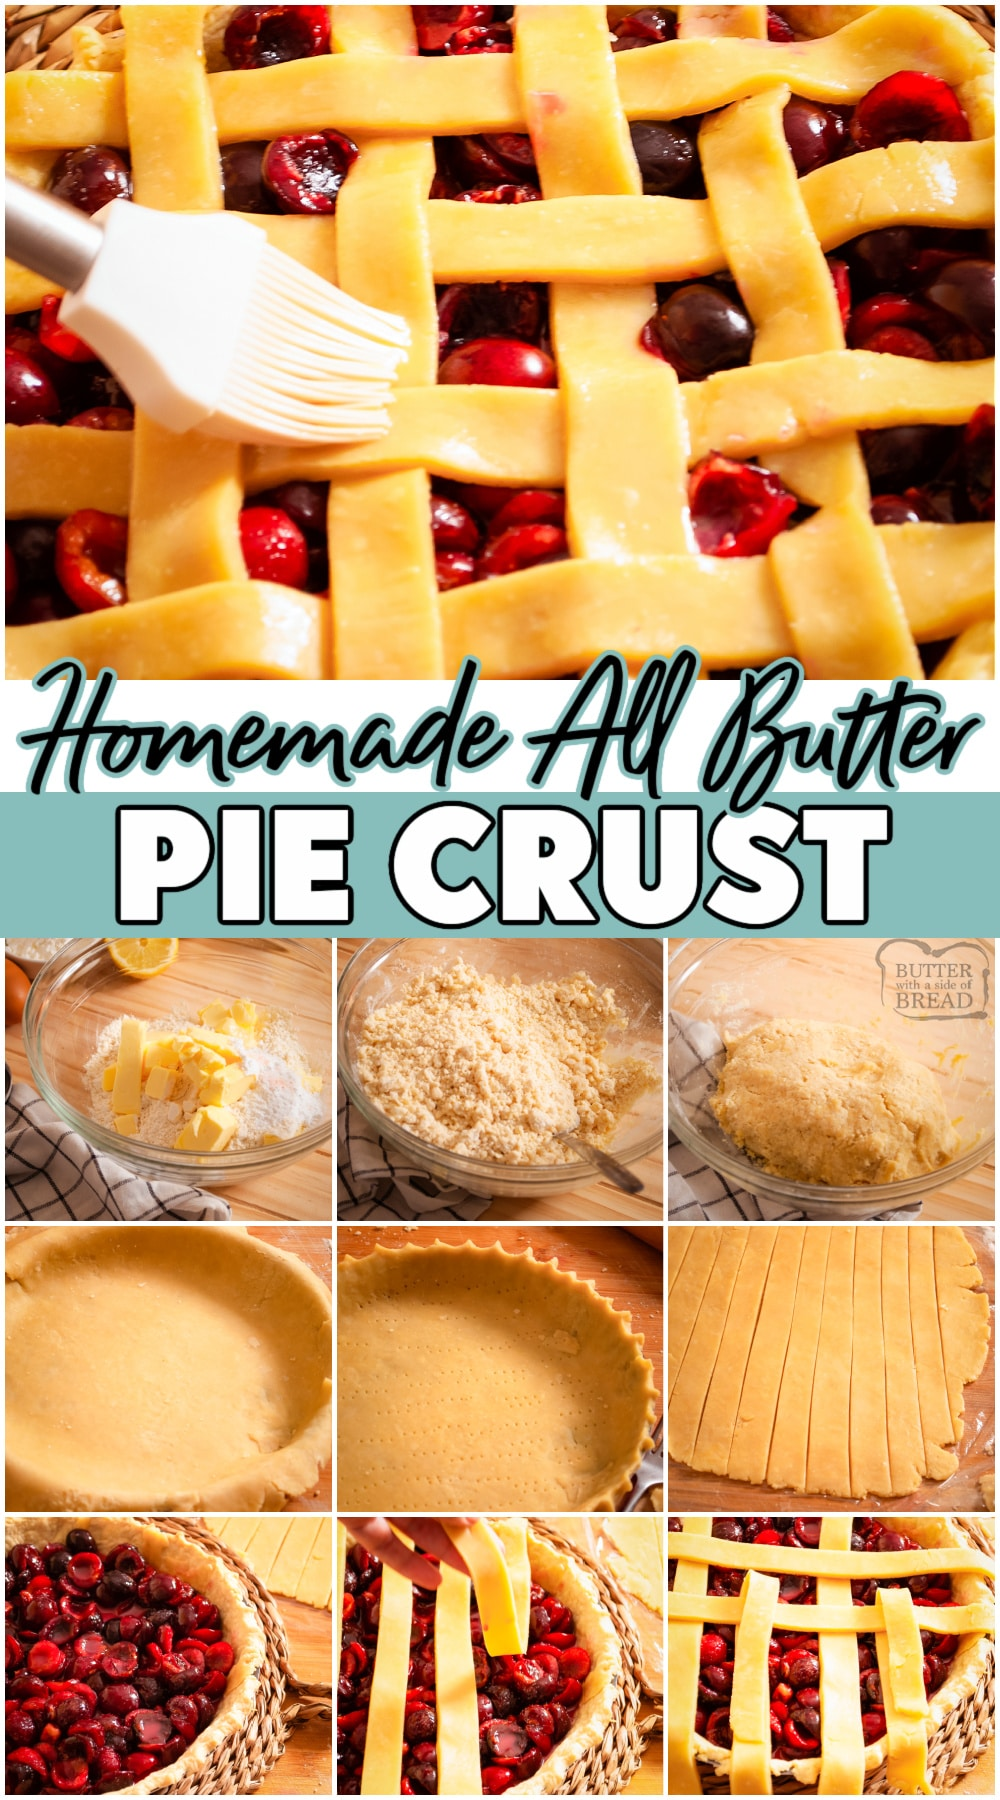 Easy no-knead recipe for the flakiest, homemade all-butter pie crust, perfect to make sweet or savory pies.#pie #piecrust #butter #baking #easyrecipe from BUTTER WITH A SIDE OF BREAD